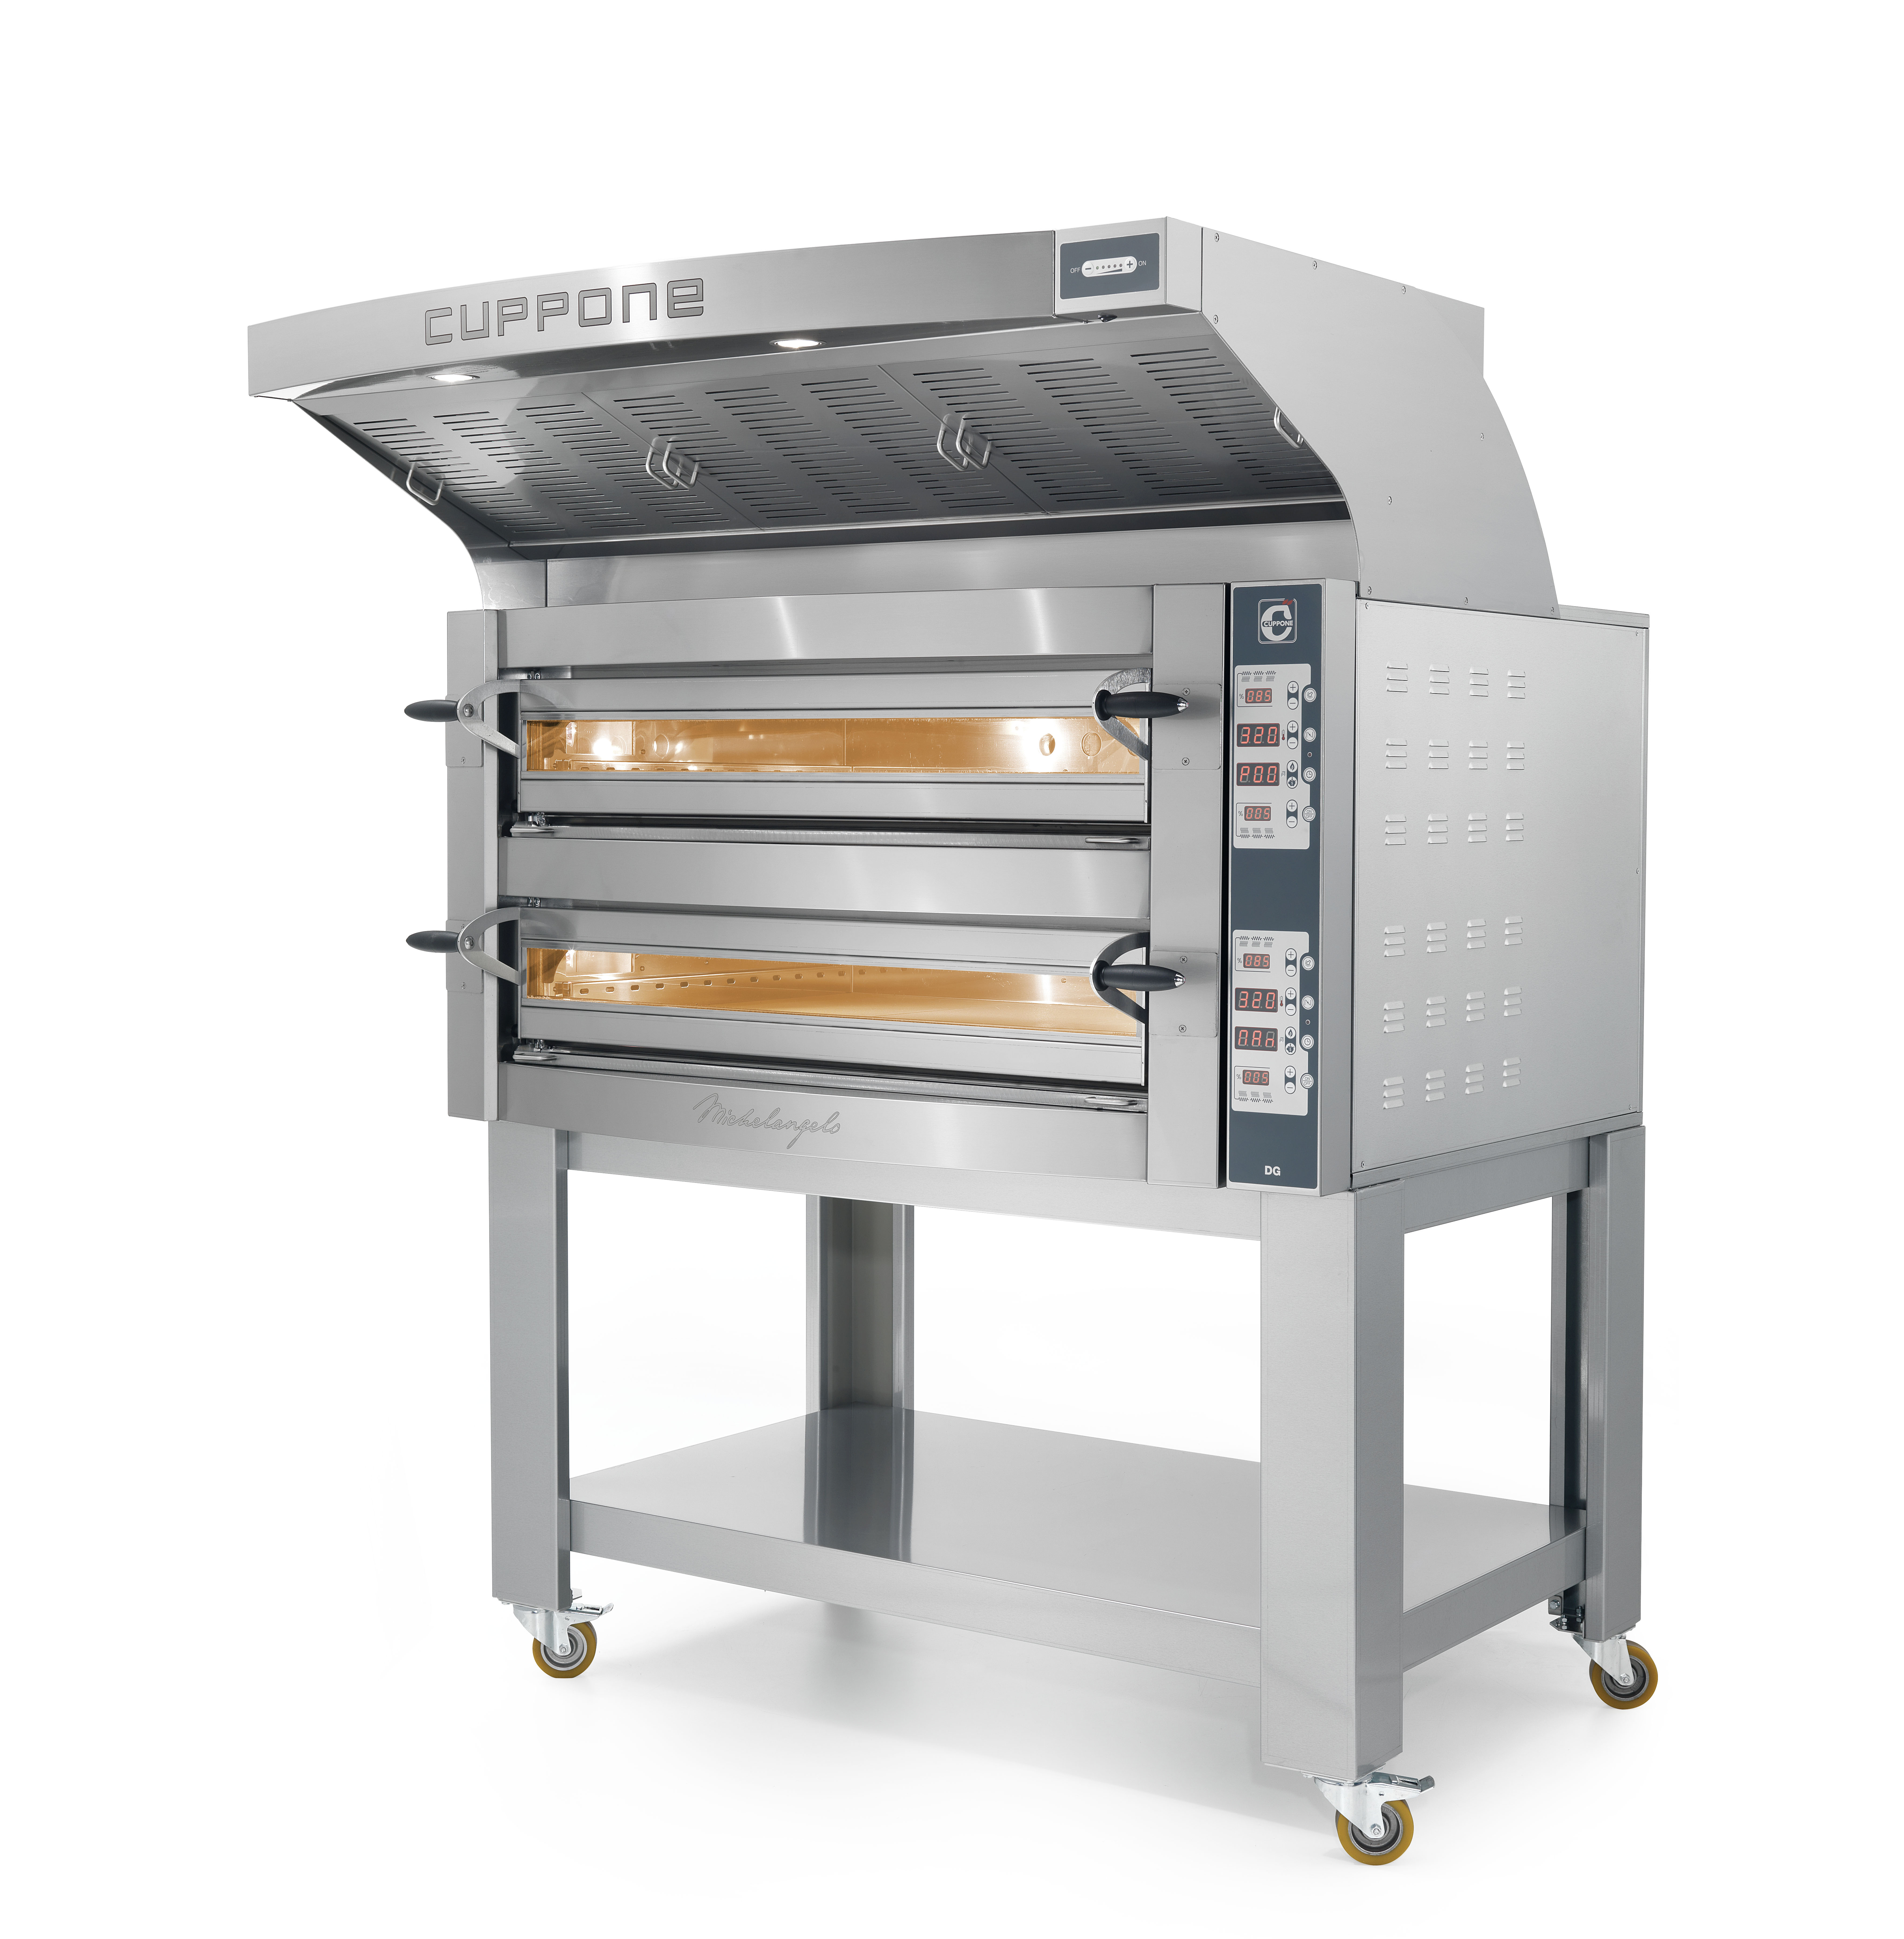 Cuppone Michelangelo Electric Oven Pizza Equipment Pros